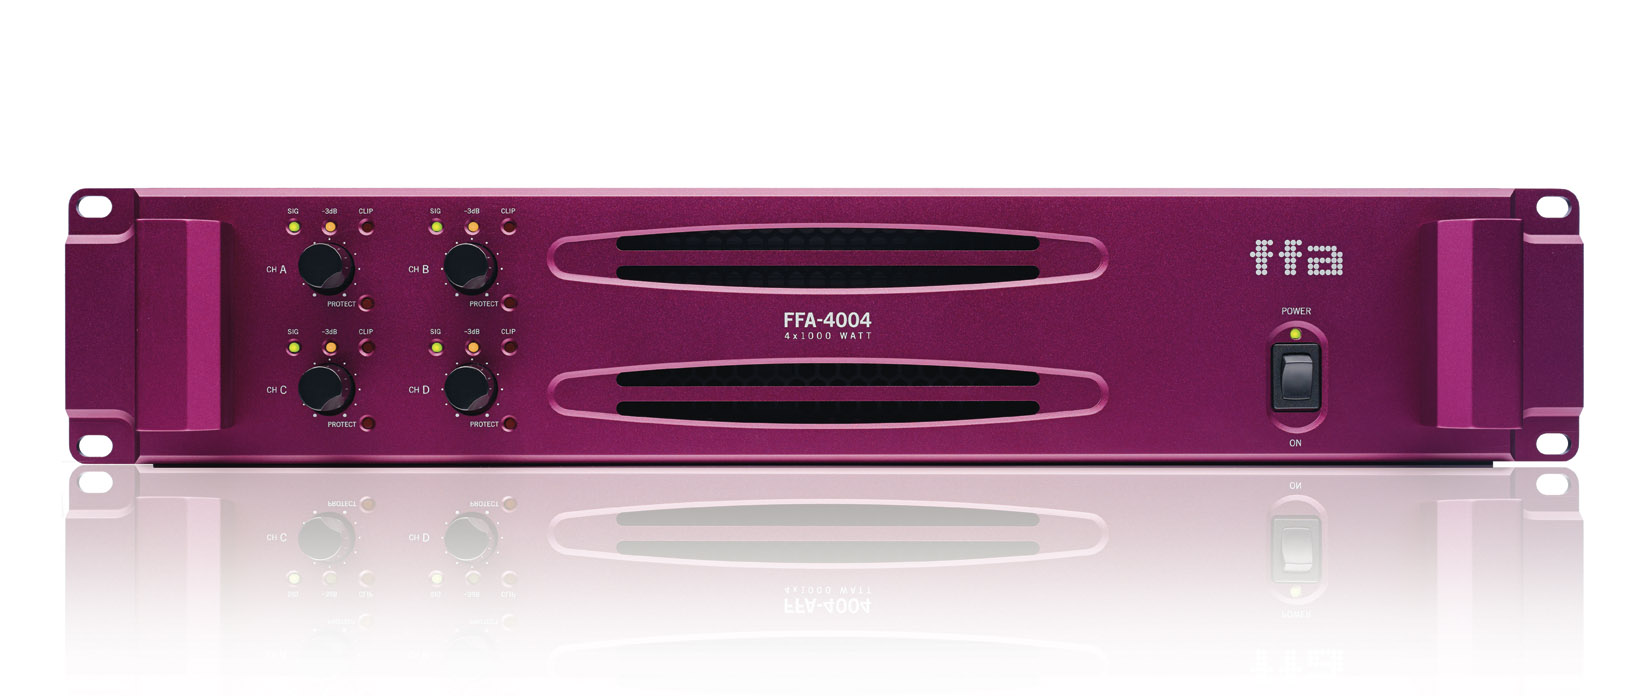 FFA-4004 G2 DSP Product Image